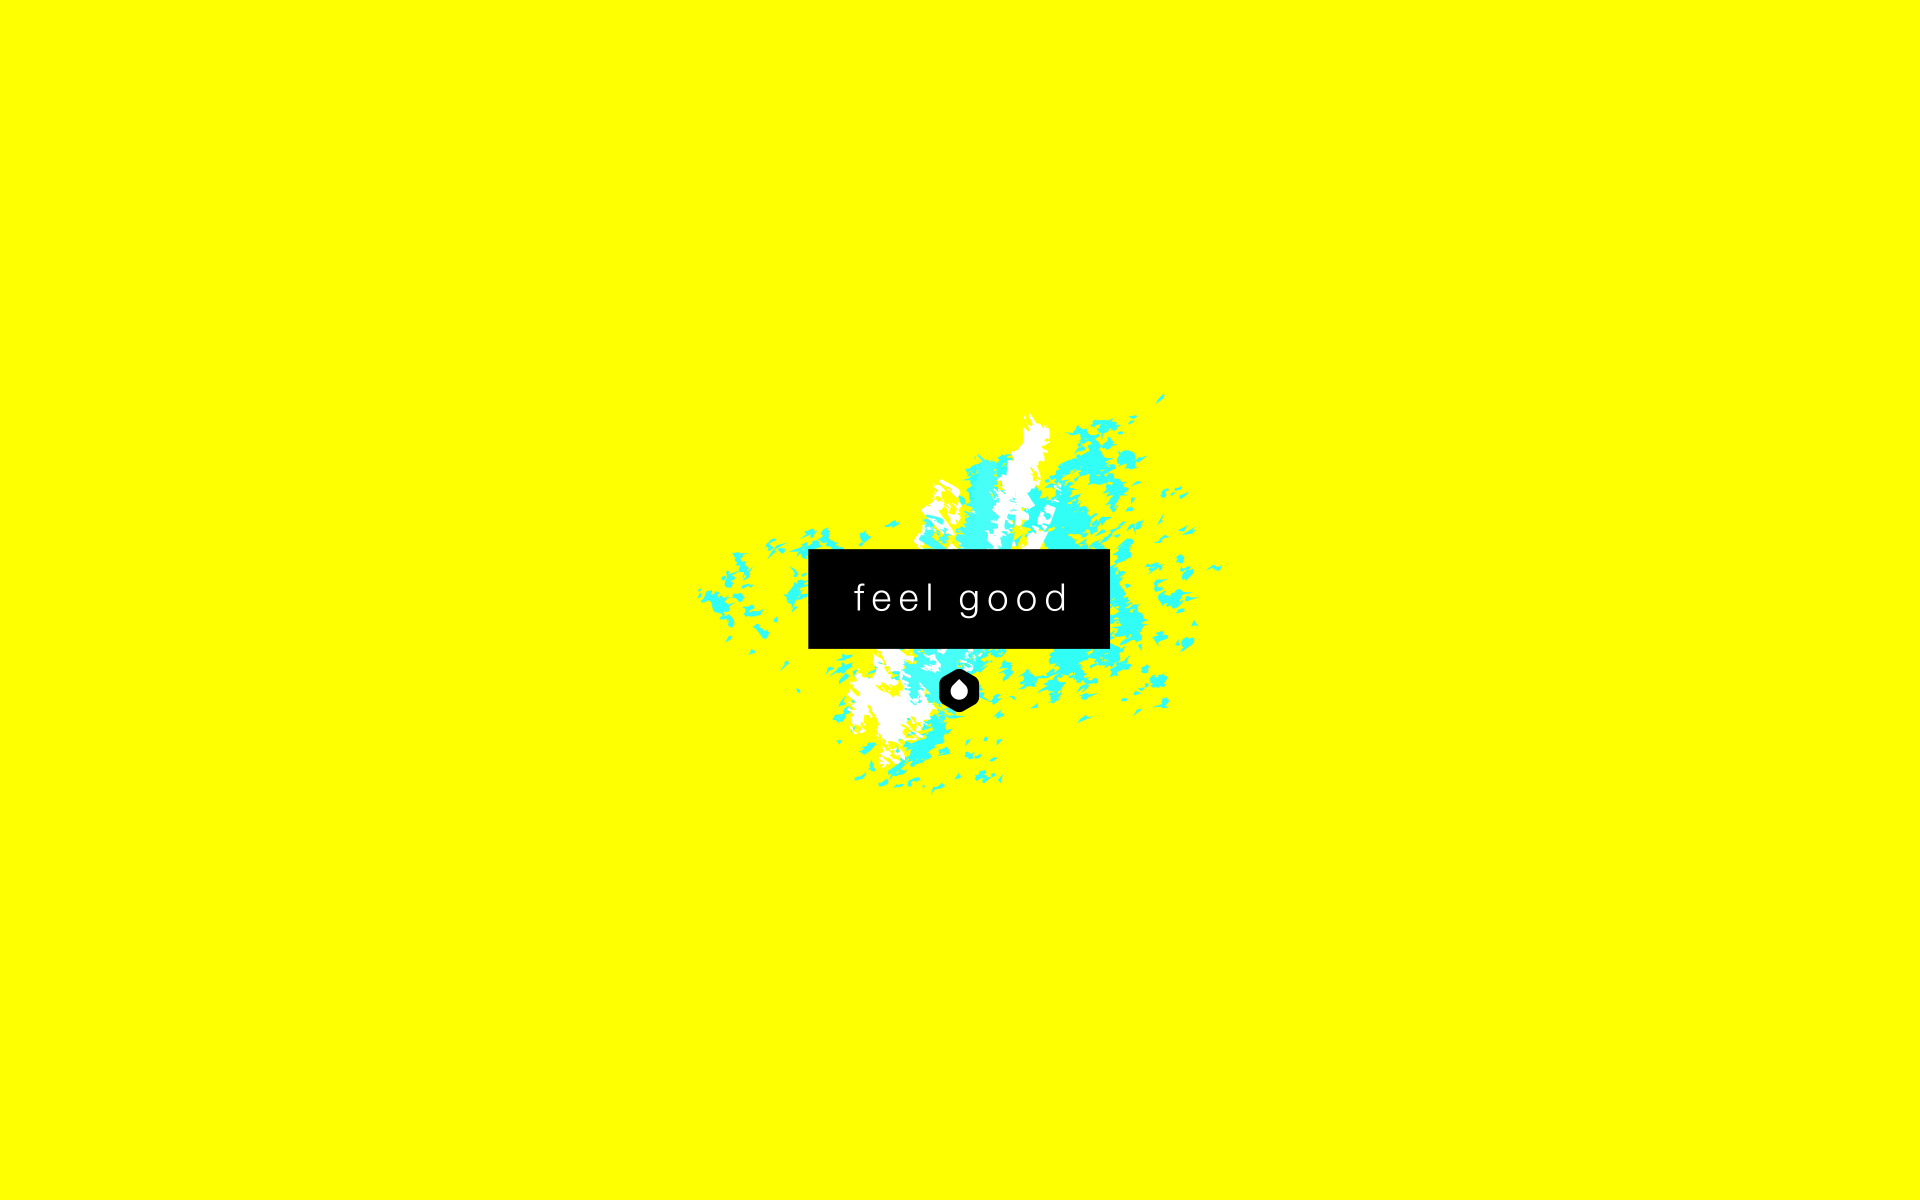 Wallpaper-FeelGood-DesktopHD